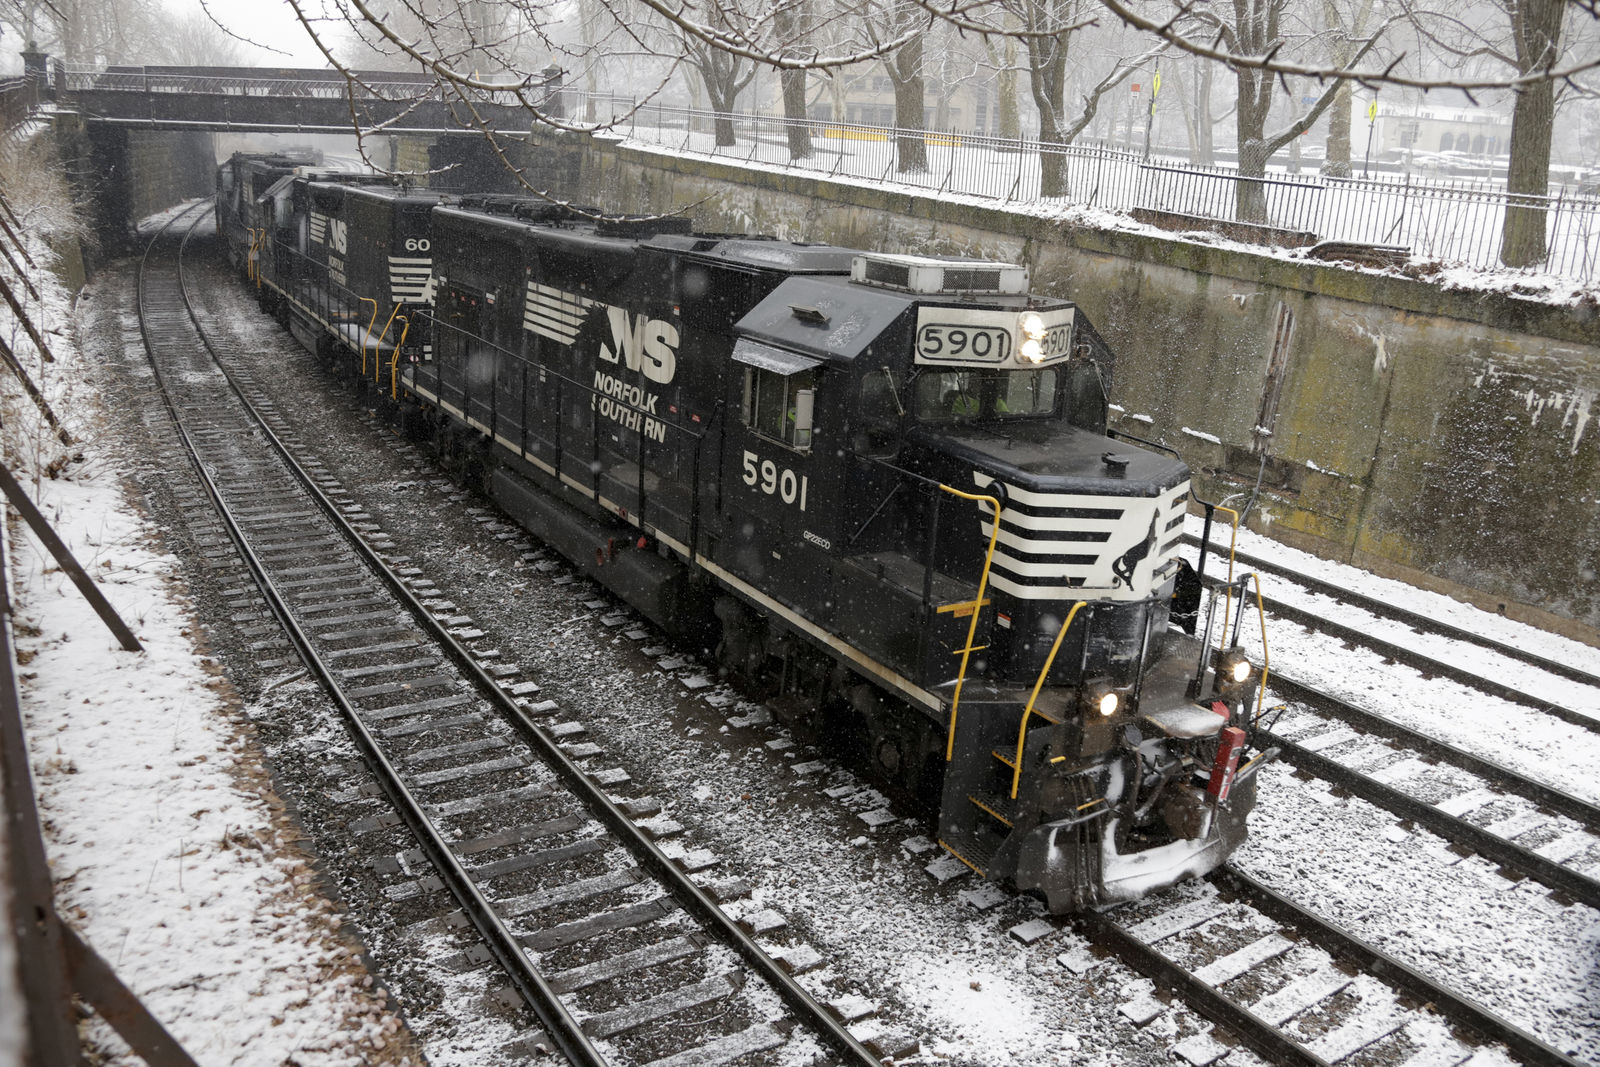 FILE - In this March 3, 2019, file photo a Norfolk Southern Railway Company freight train passes through Pittsburgh. More than two dozen major companies ranging from Campbell Soup to Kia filed anti-trust lawsuits on Sept. 30, 2019 against the nation's four largest railway companies, contending the railroads had a price-fixing scheme to illegally boost profits.(AP Photo/Gene J. Puskar, File)